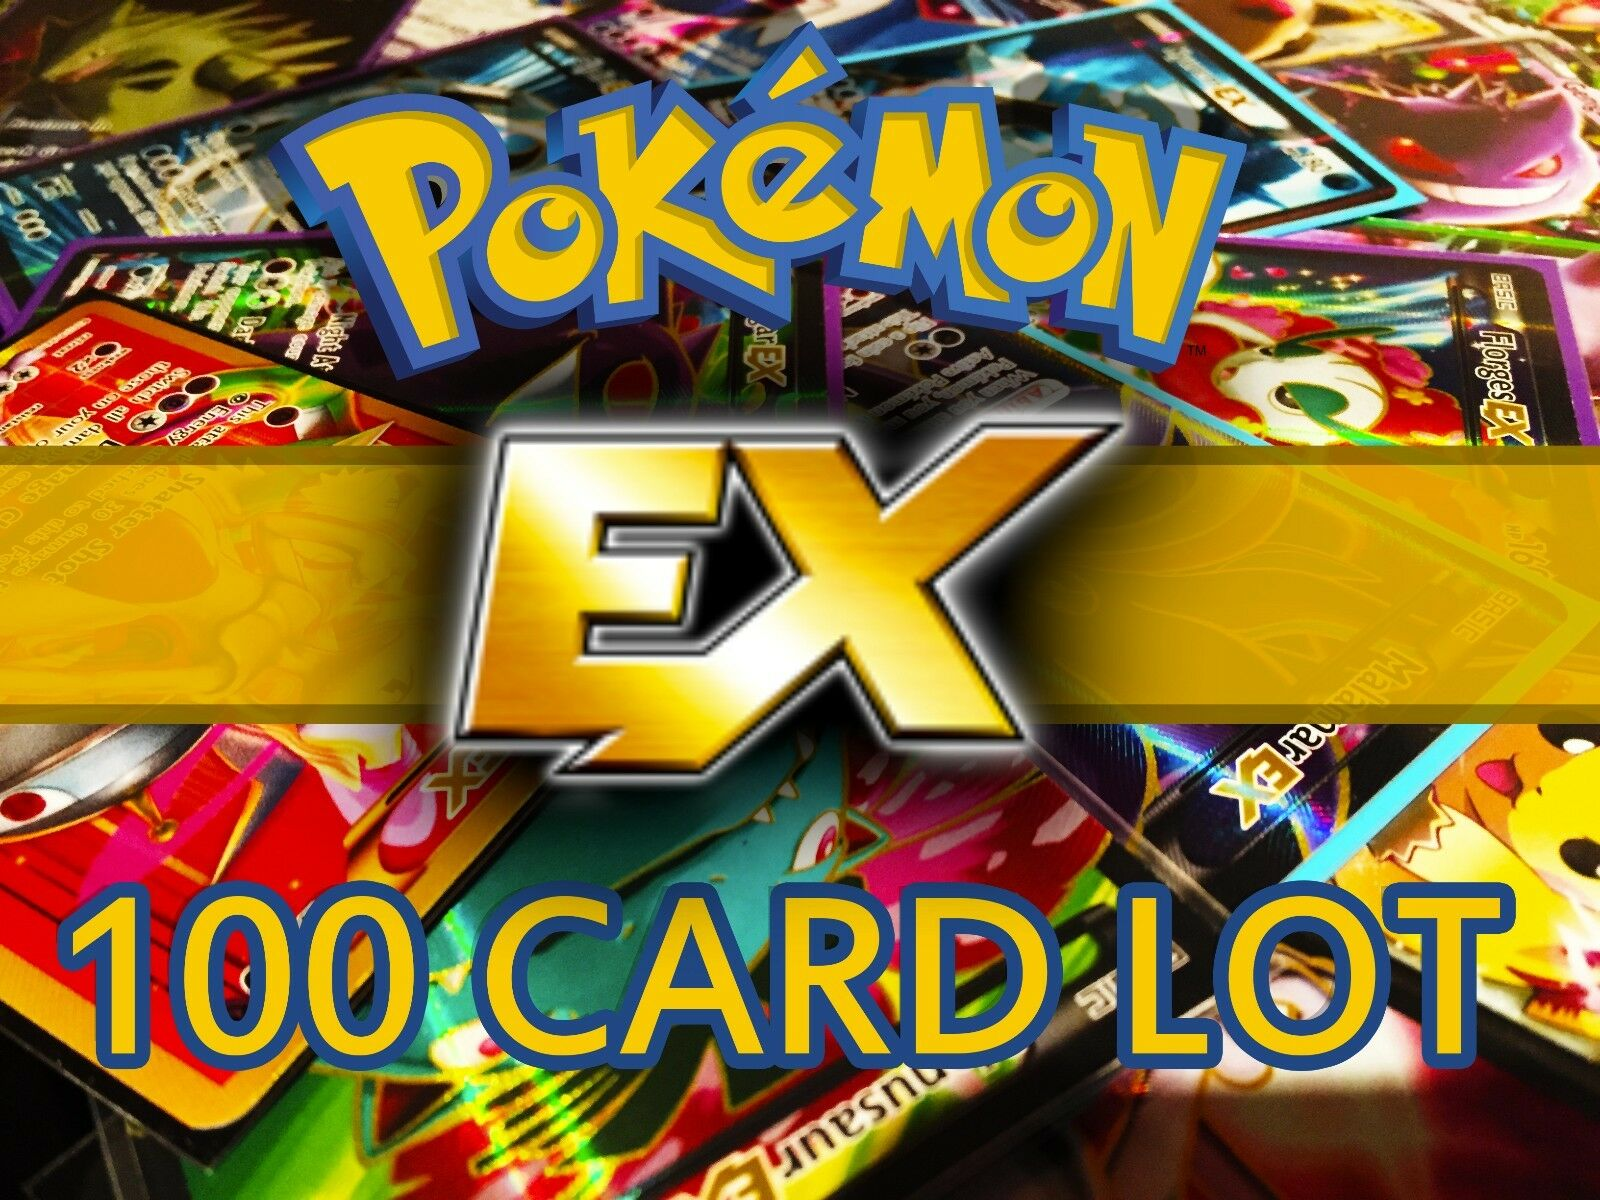 ::Pokemon TCG - 100 Cards Ex Or MEGA EX FULL ART Rare HOLO Guaranteed Holo & Rares